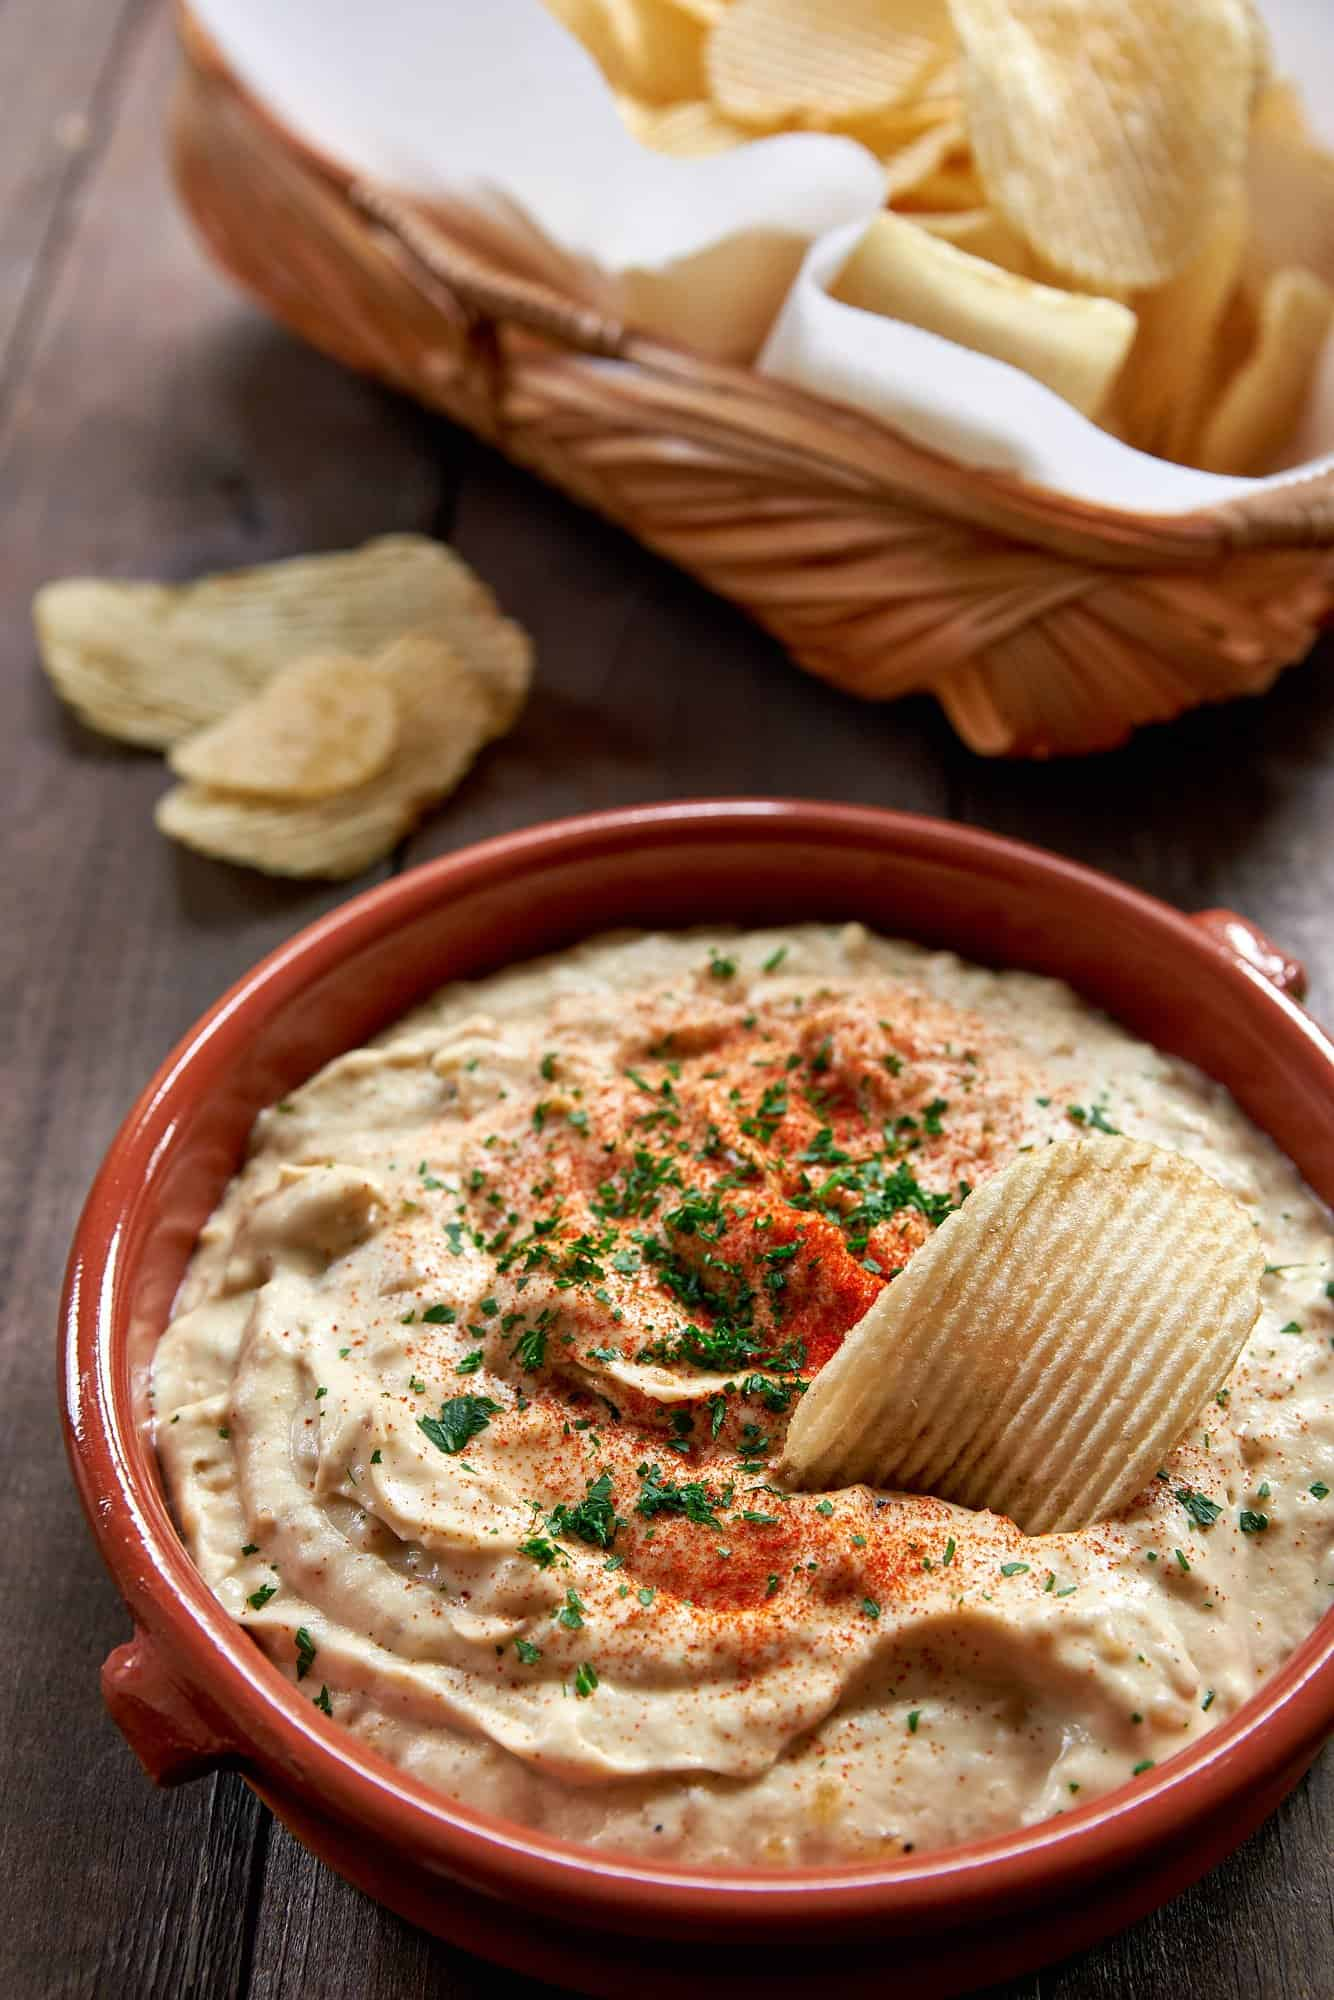 """This guilt-free french Onion dip is made from scratch and loaded with sweet caramelized onions in a tangy cashew """"sour cream"""" #plantbased #dairyfree #dip."""